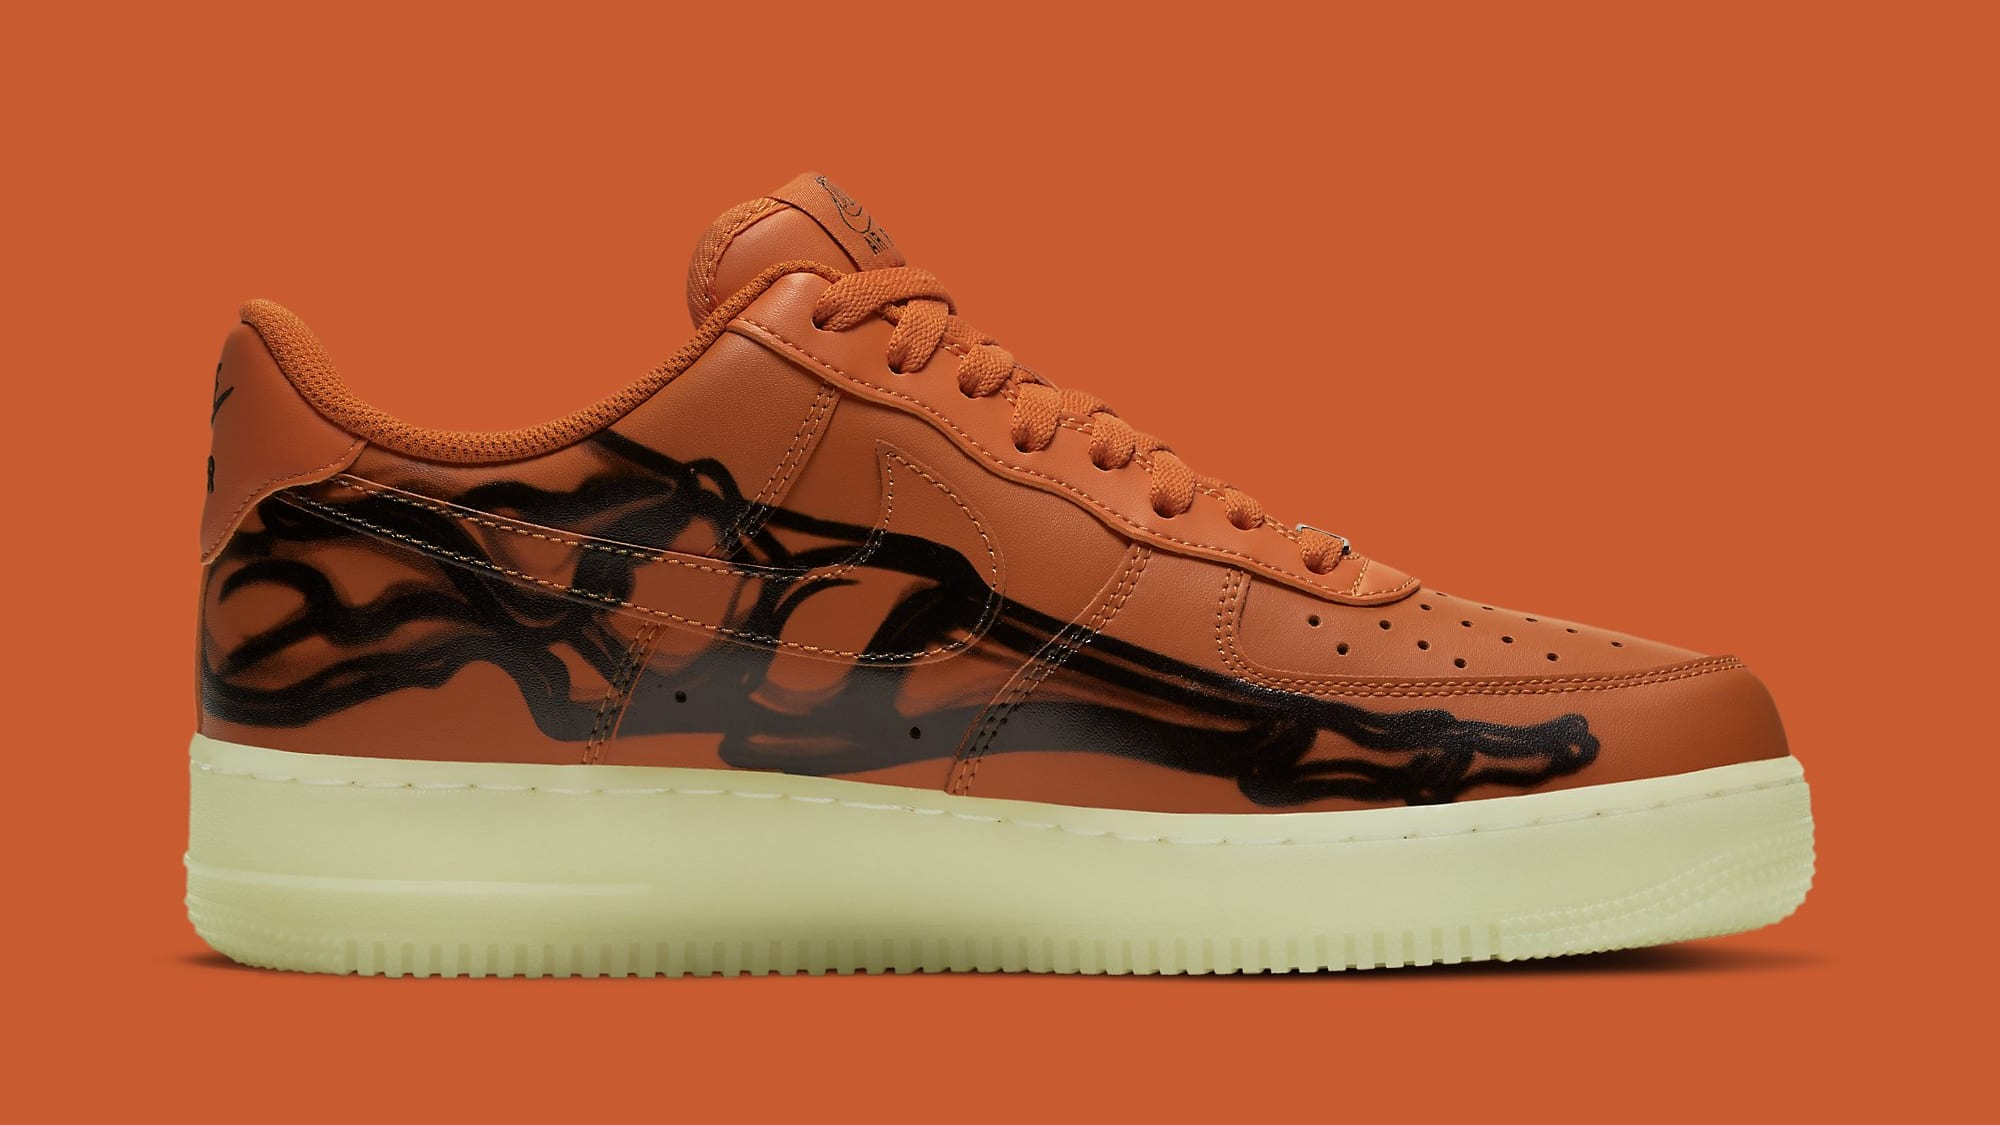 Nike Air Force 1 Low Skeleton 'Orange' CU8067-800 Medial